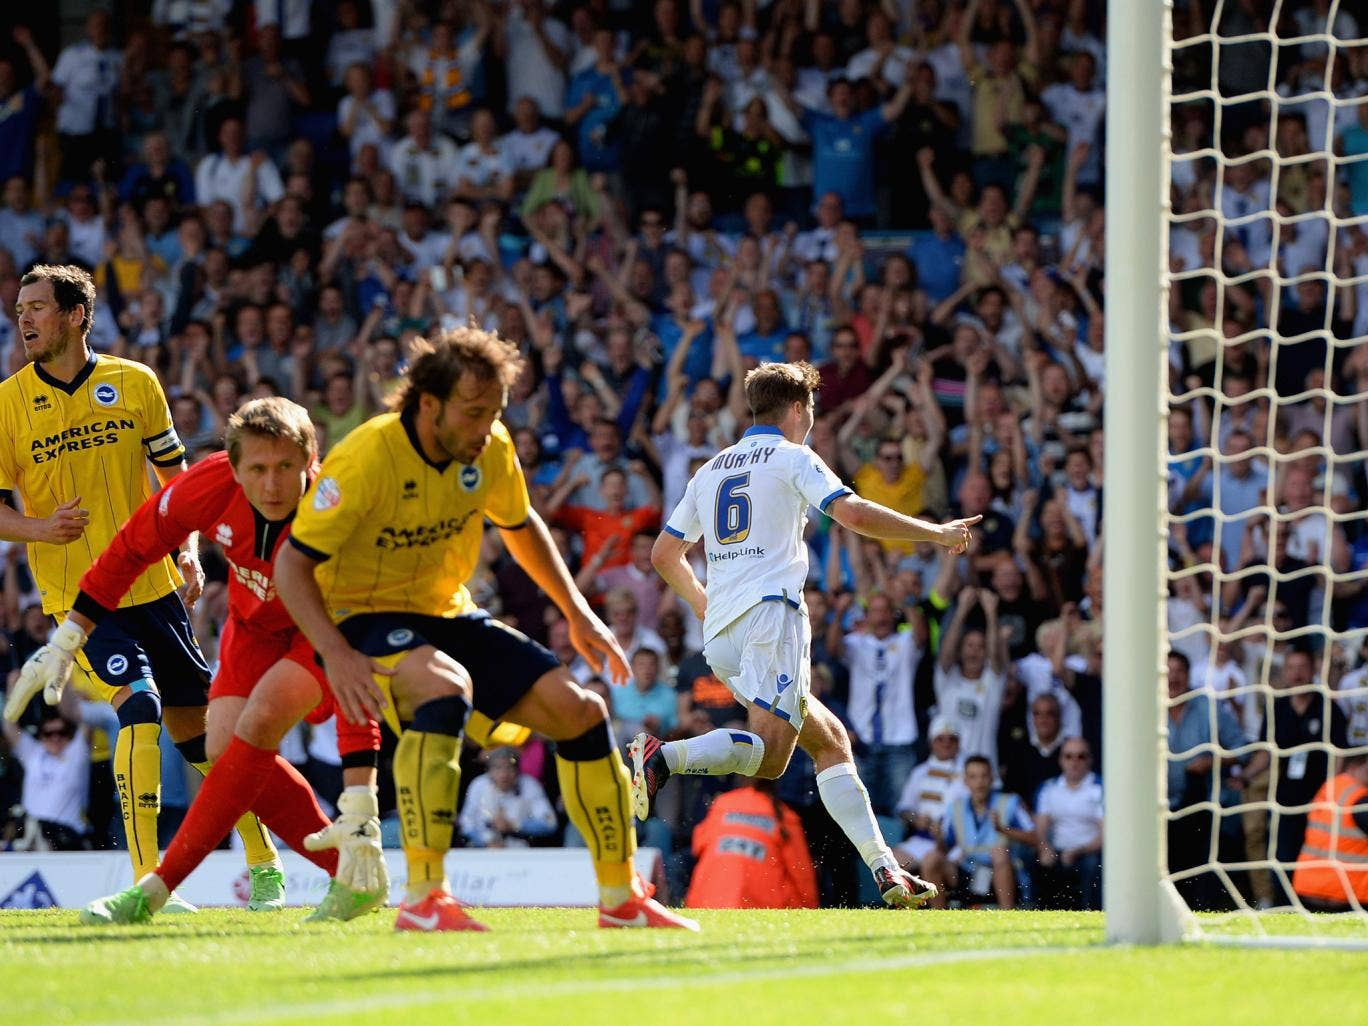 Luke Murphy turns to celebrate his late winning goal for Leeds in the 2-1 victory over Brighton